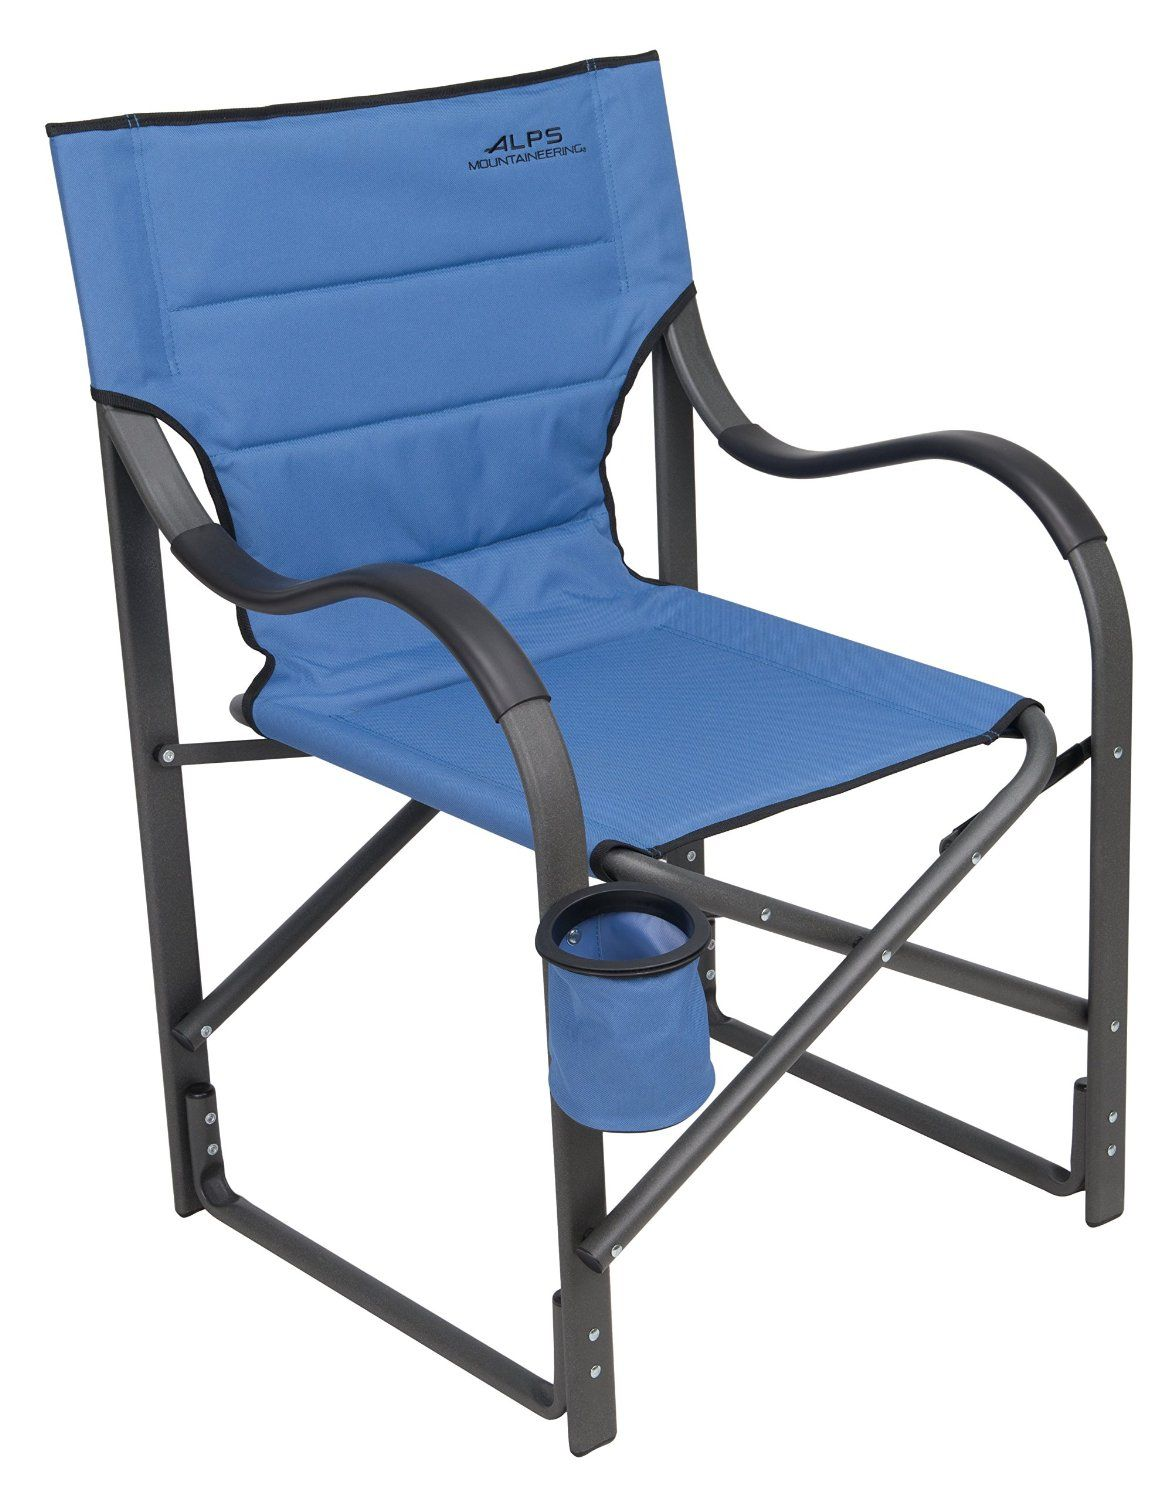 Alps Mountaineering Camp Chair Remarkable Product Available Now Camping Furniture Camping Chairs Outdoor Hanging Seat Folding Camping Chairs